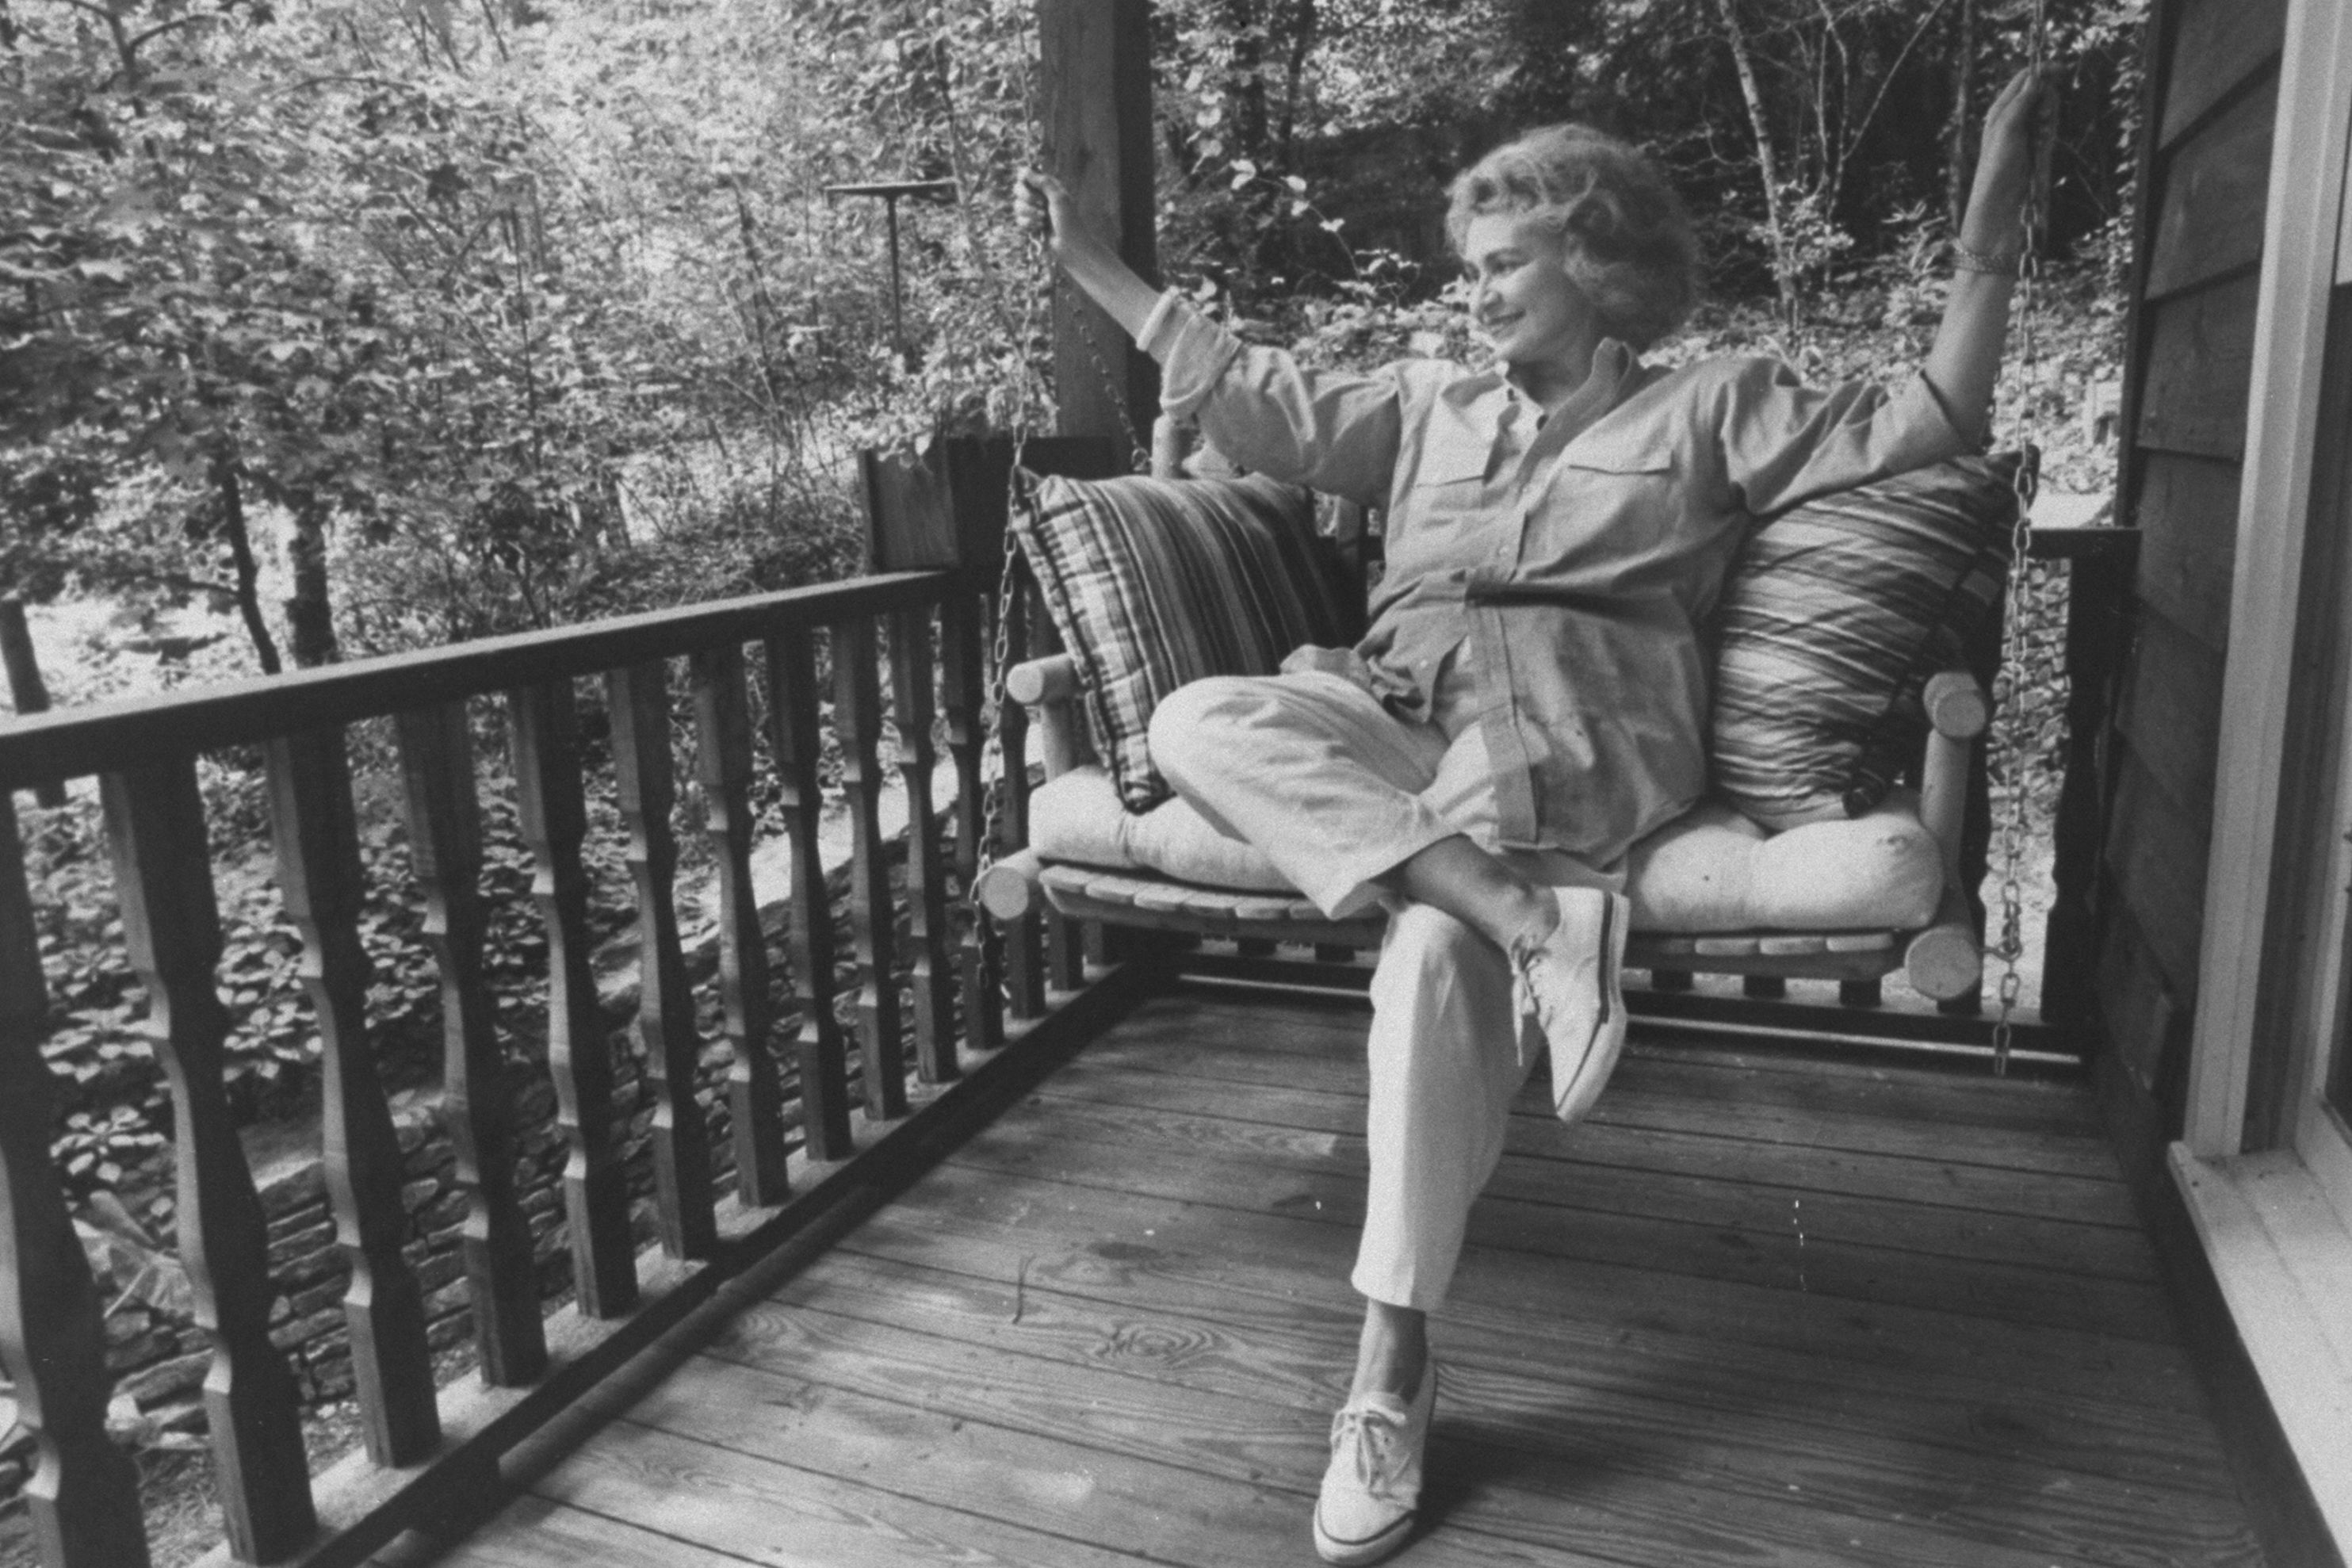 Anne Rivers Siddons, Quintessential Southern Author, Has Died